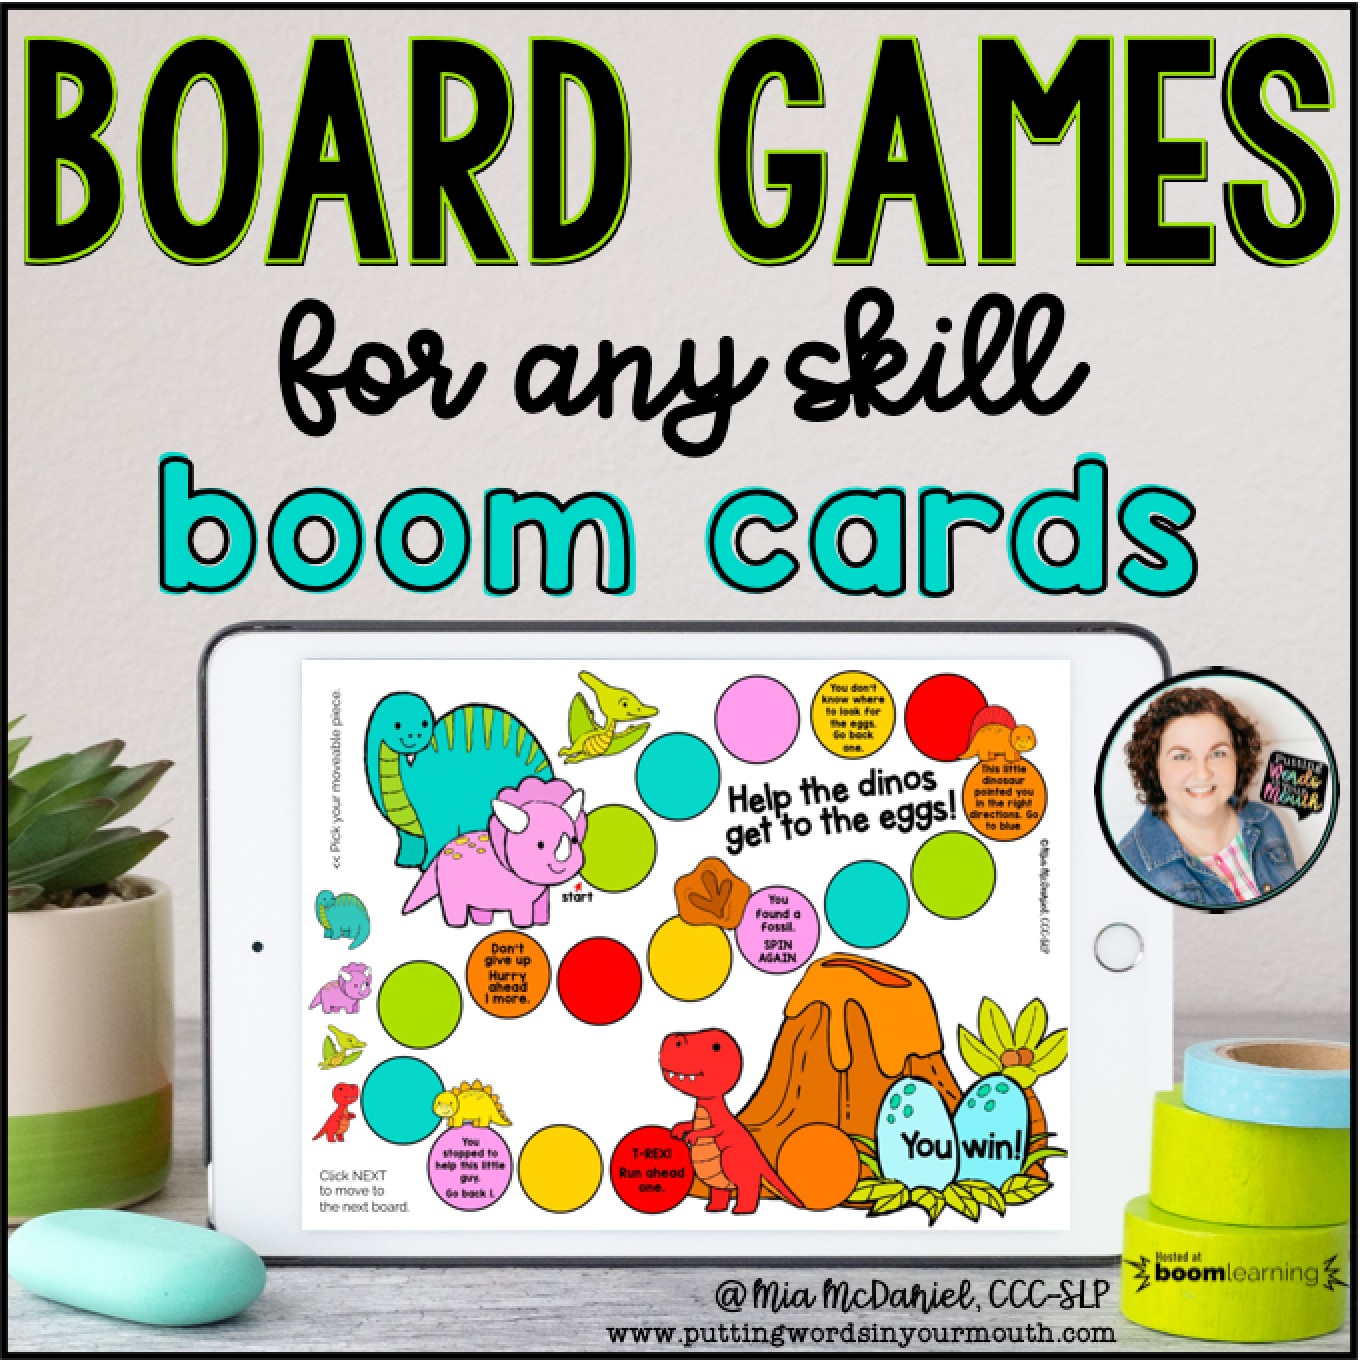 Digital Board Games for any skill - Boom Cards!